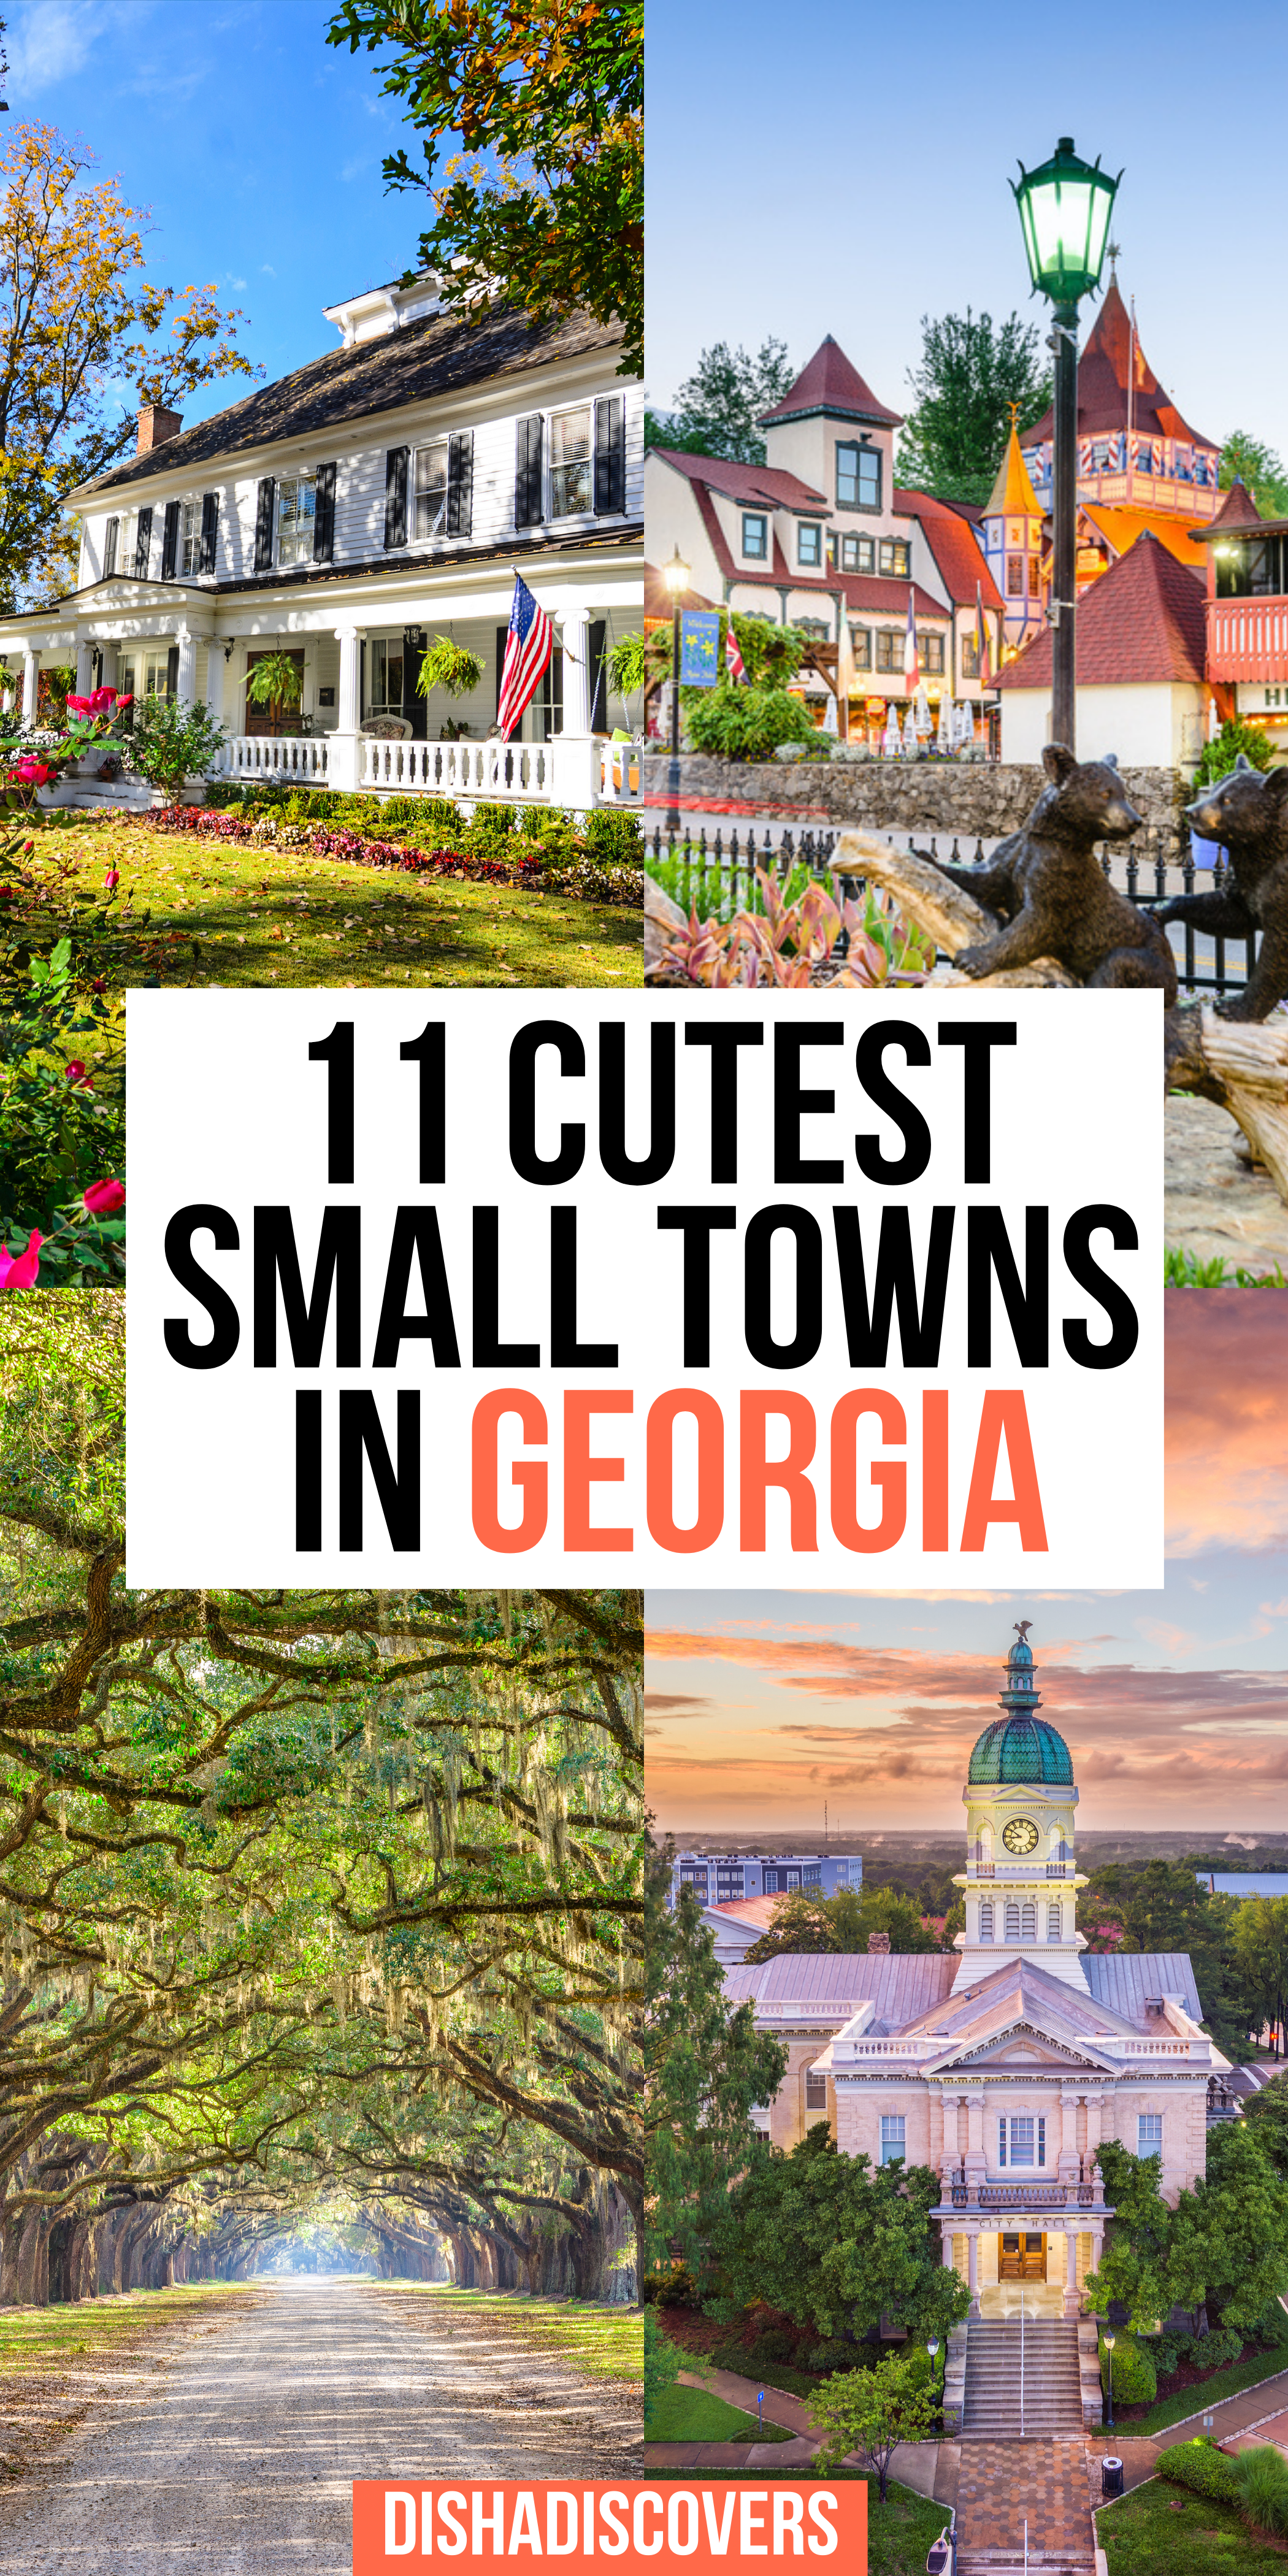 11 Prettiest Towns in Georgia for Your Next Getawa